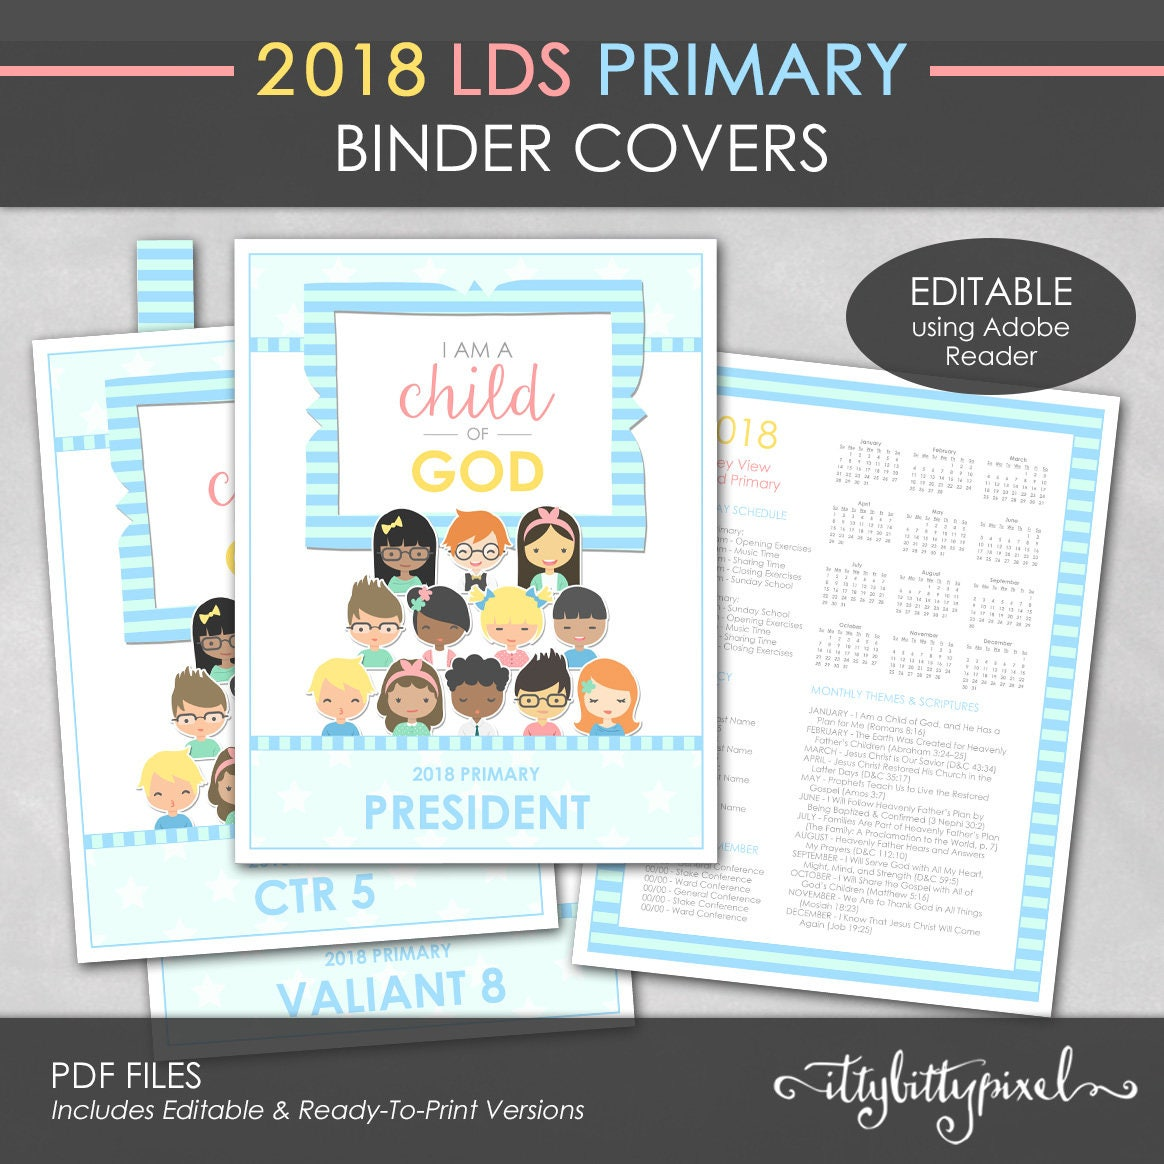 LDS 2018 Primary Binder Cover I Am a Child of God Theme